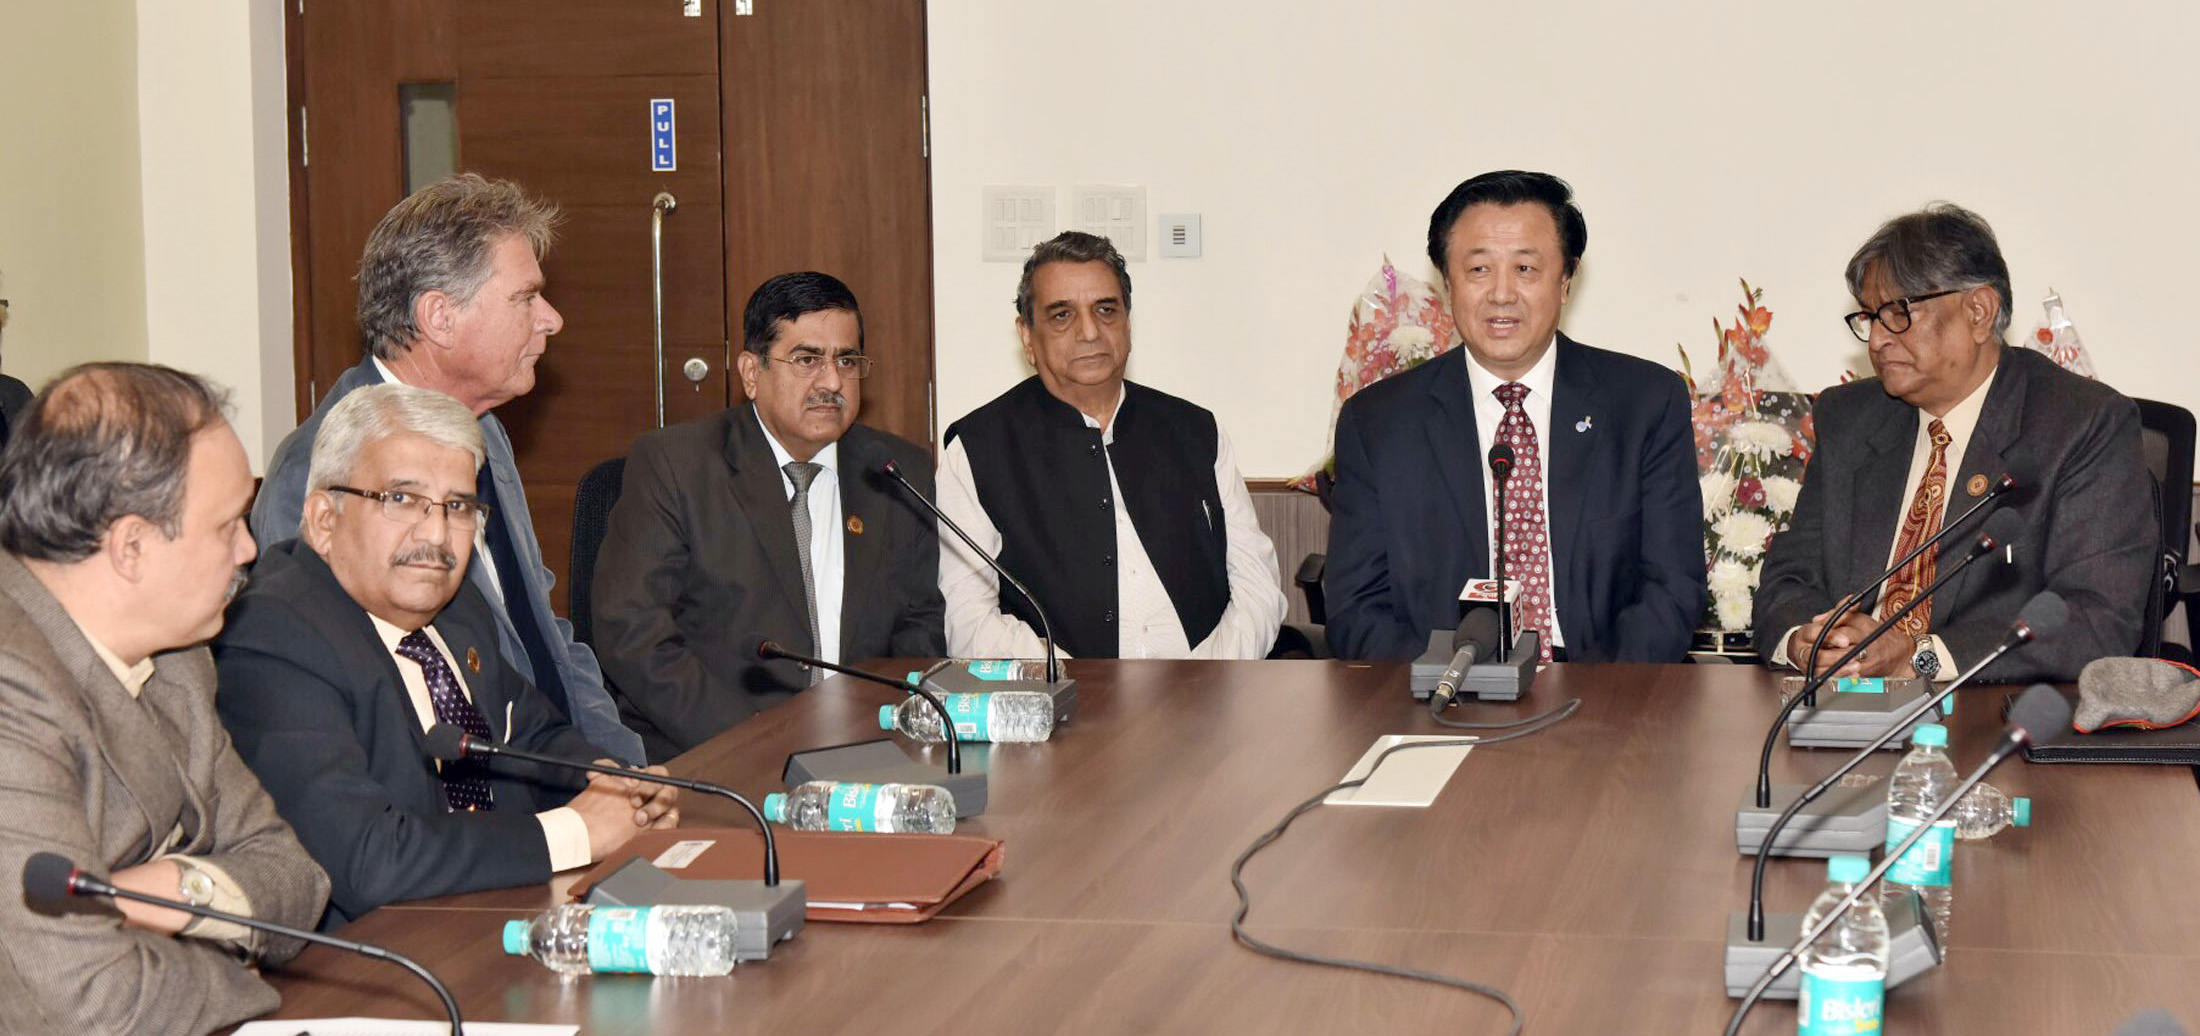 The President of International Union of Geological Sciences, Prof. Qiuming Cheng addressing the media about the 36th International Geological Congress to be held in India in 2020, in New Delhi on November 24, 2017.